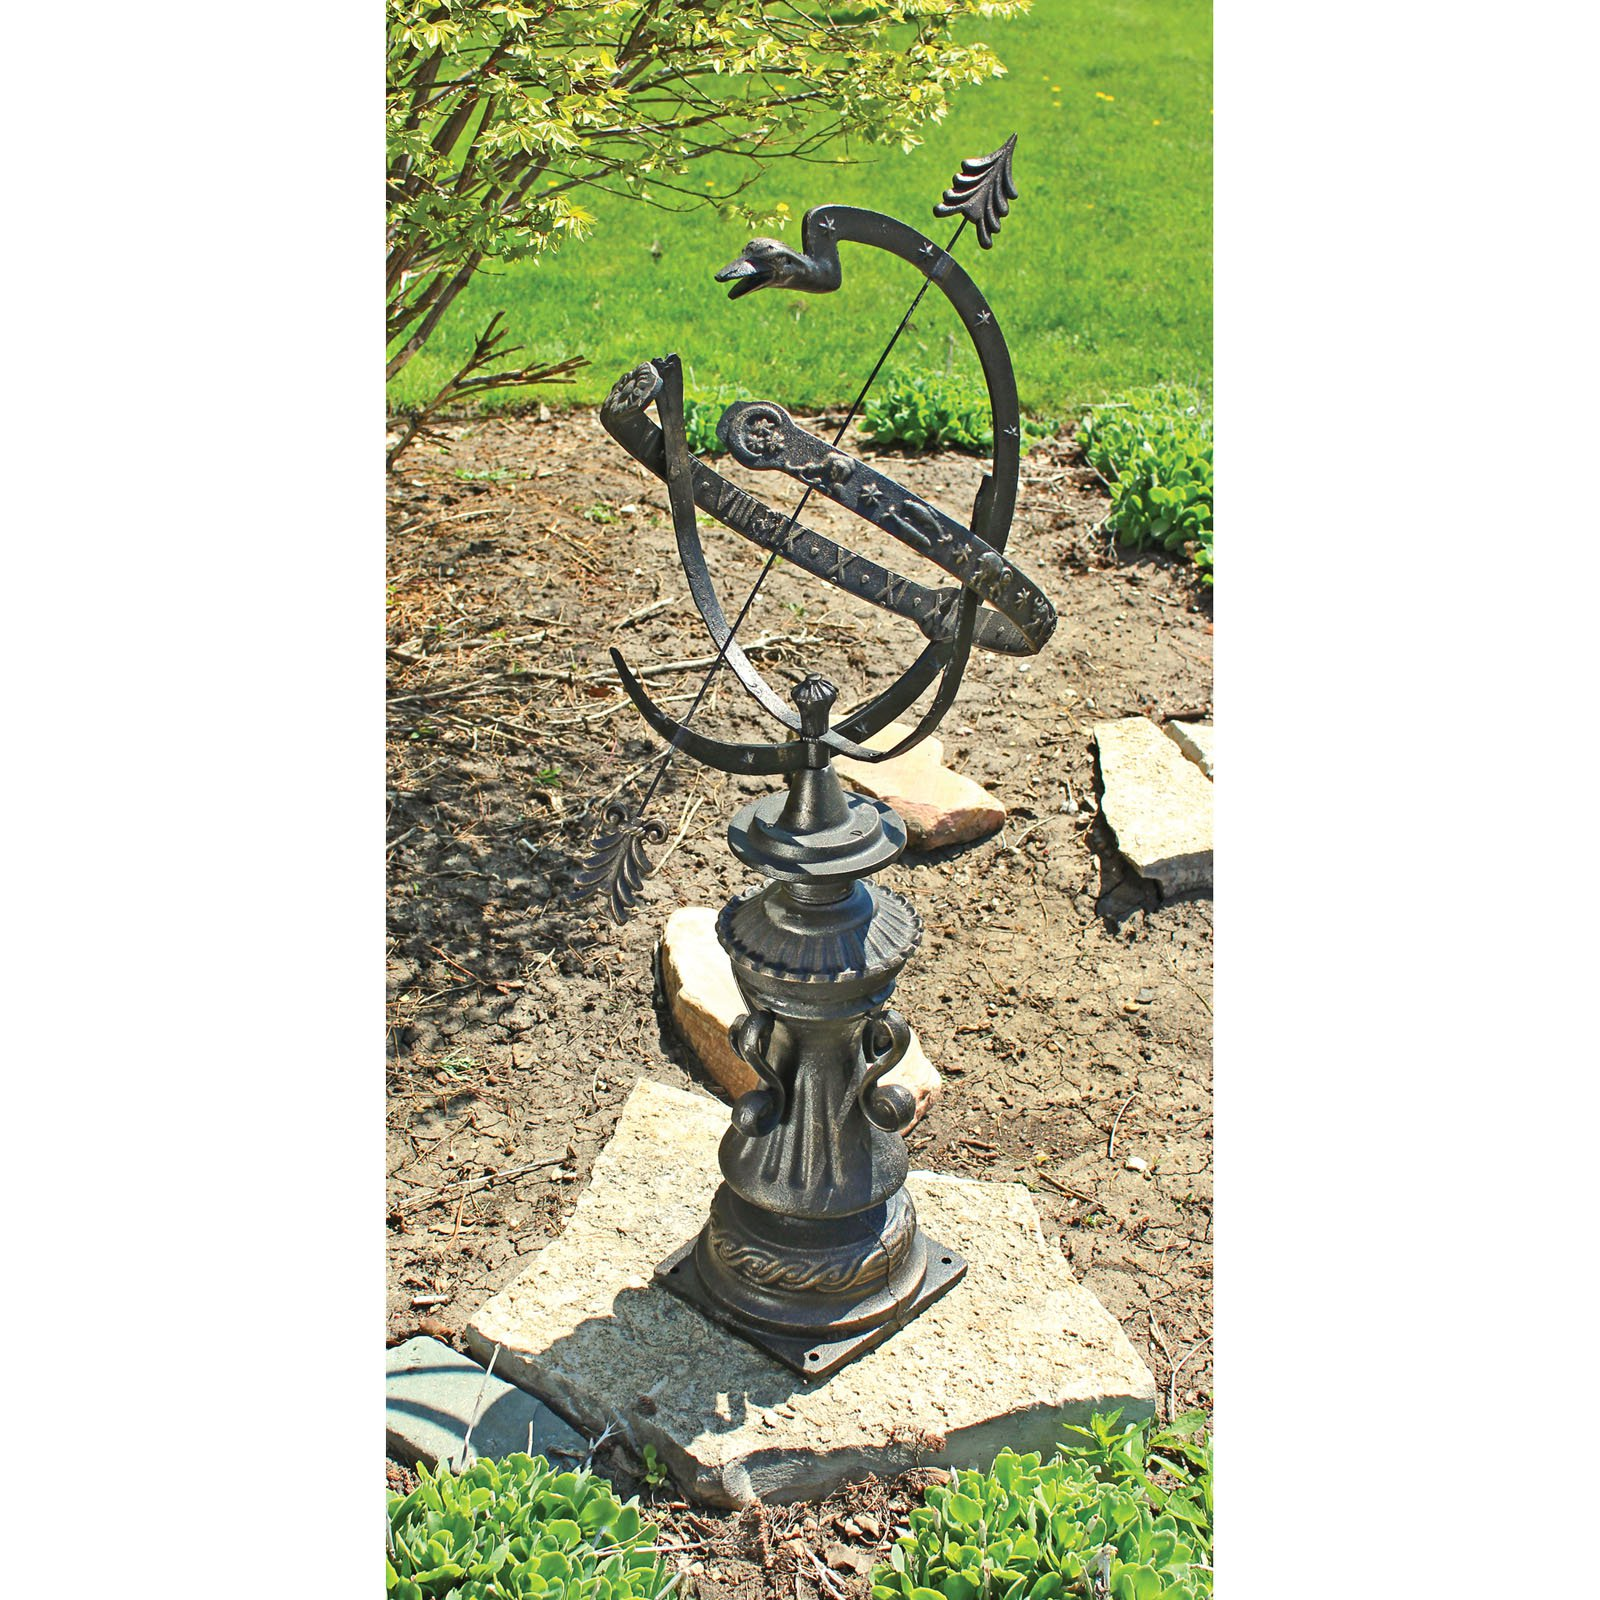 Design Toscano Hyde Park Authentic Armillary Sphere Garden Statue by Design Toscano